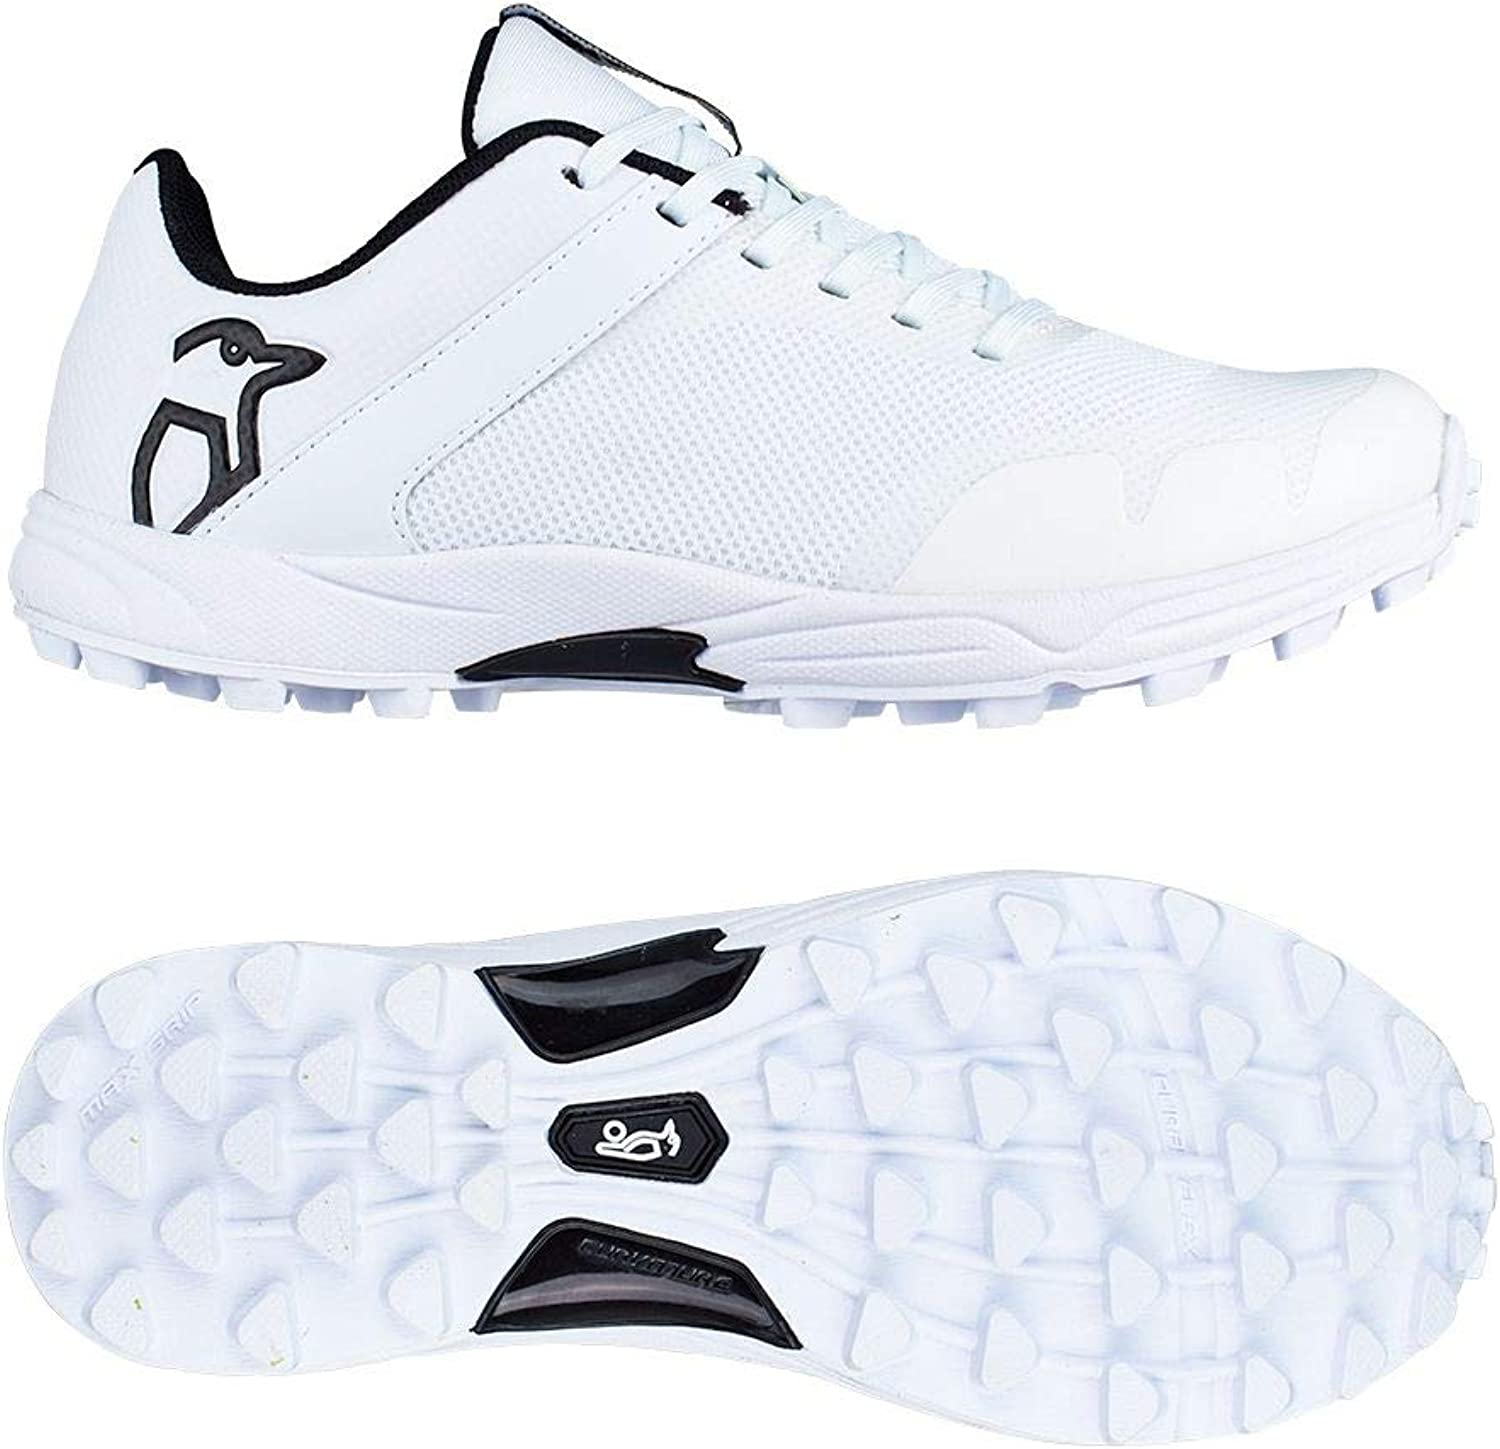 Kookaburra KC 3.0 Cricket Zapatillas Correr De Clavos: Amazon.es ...